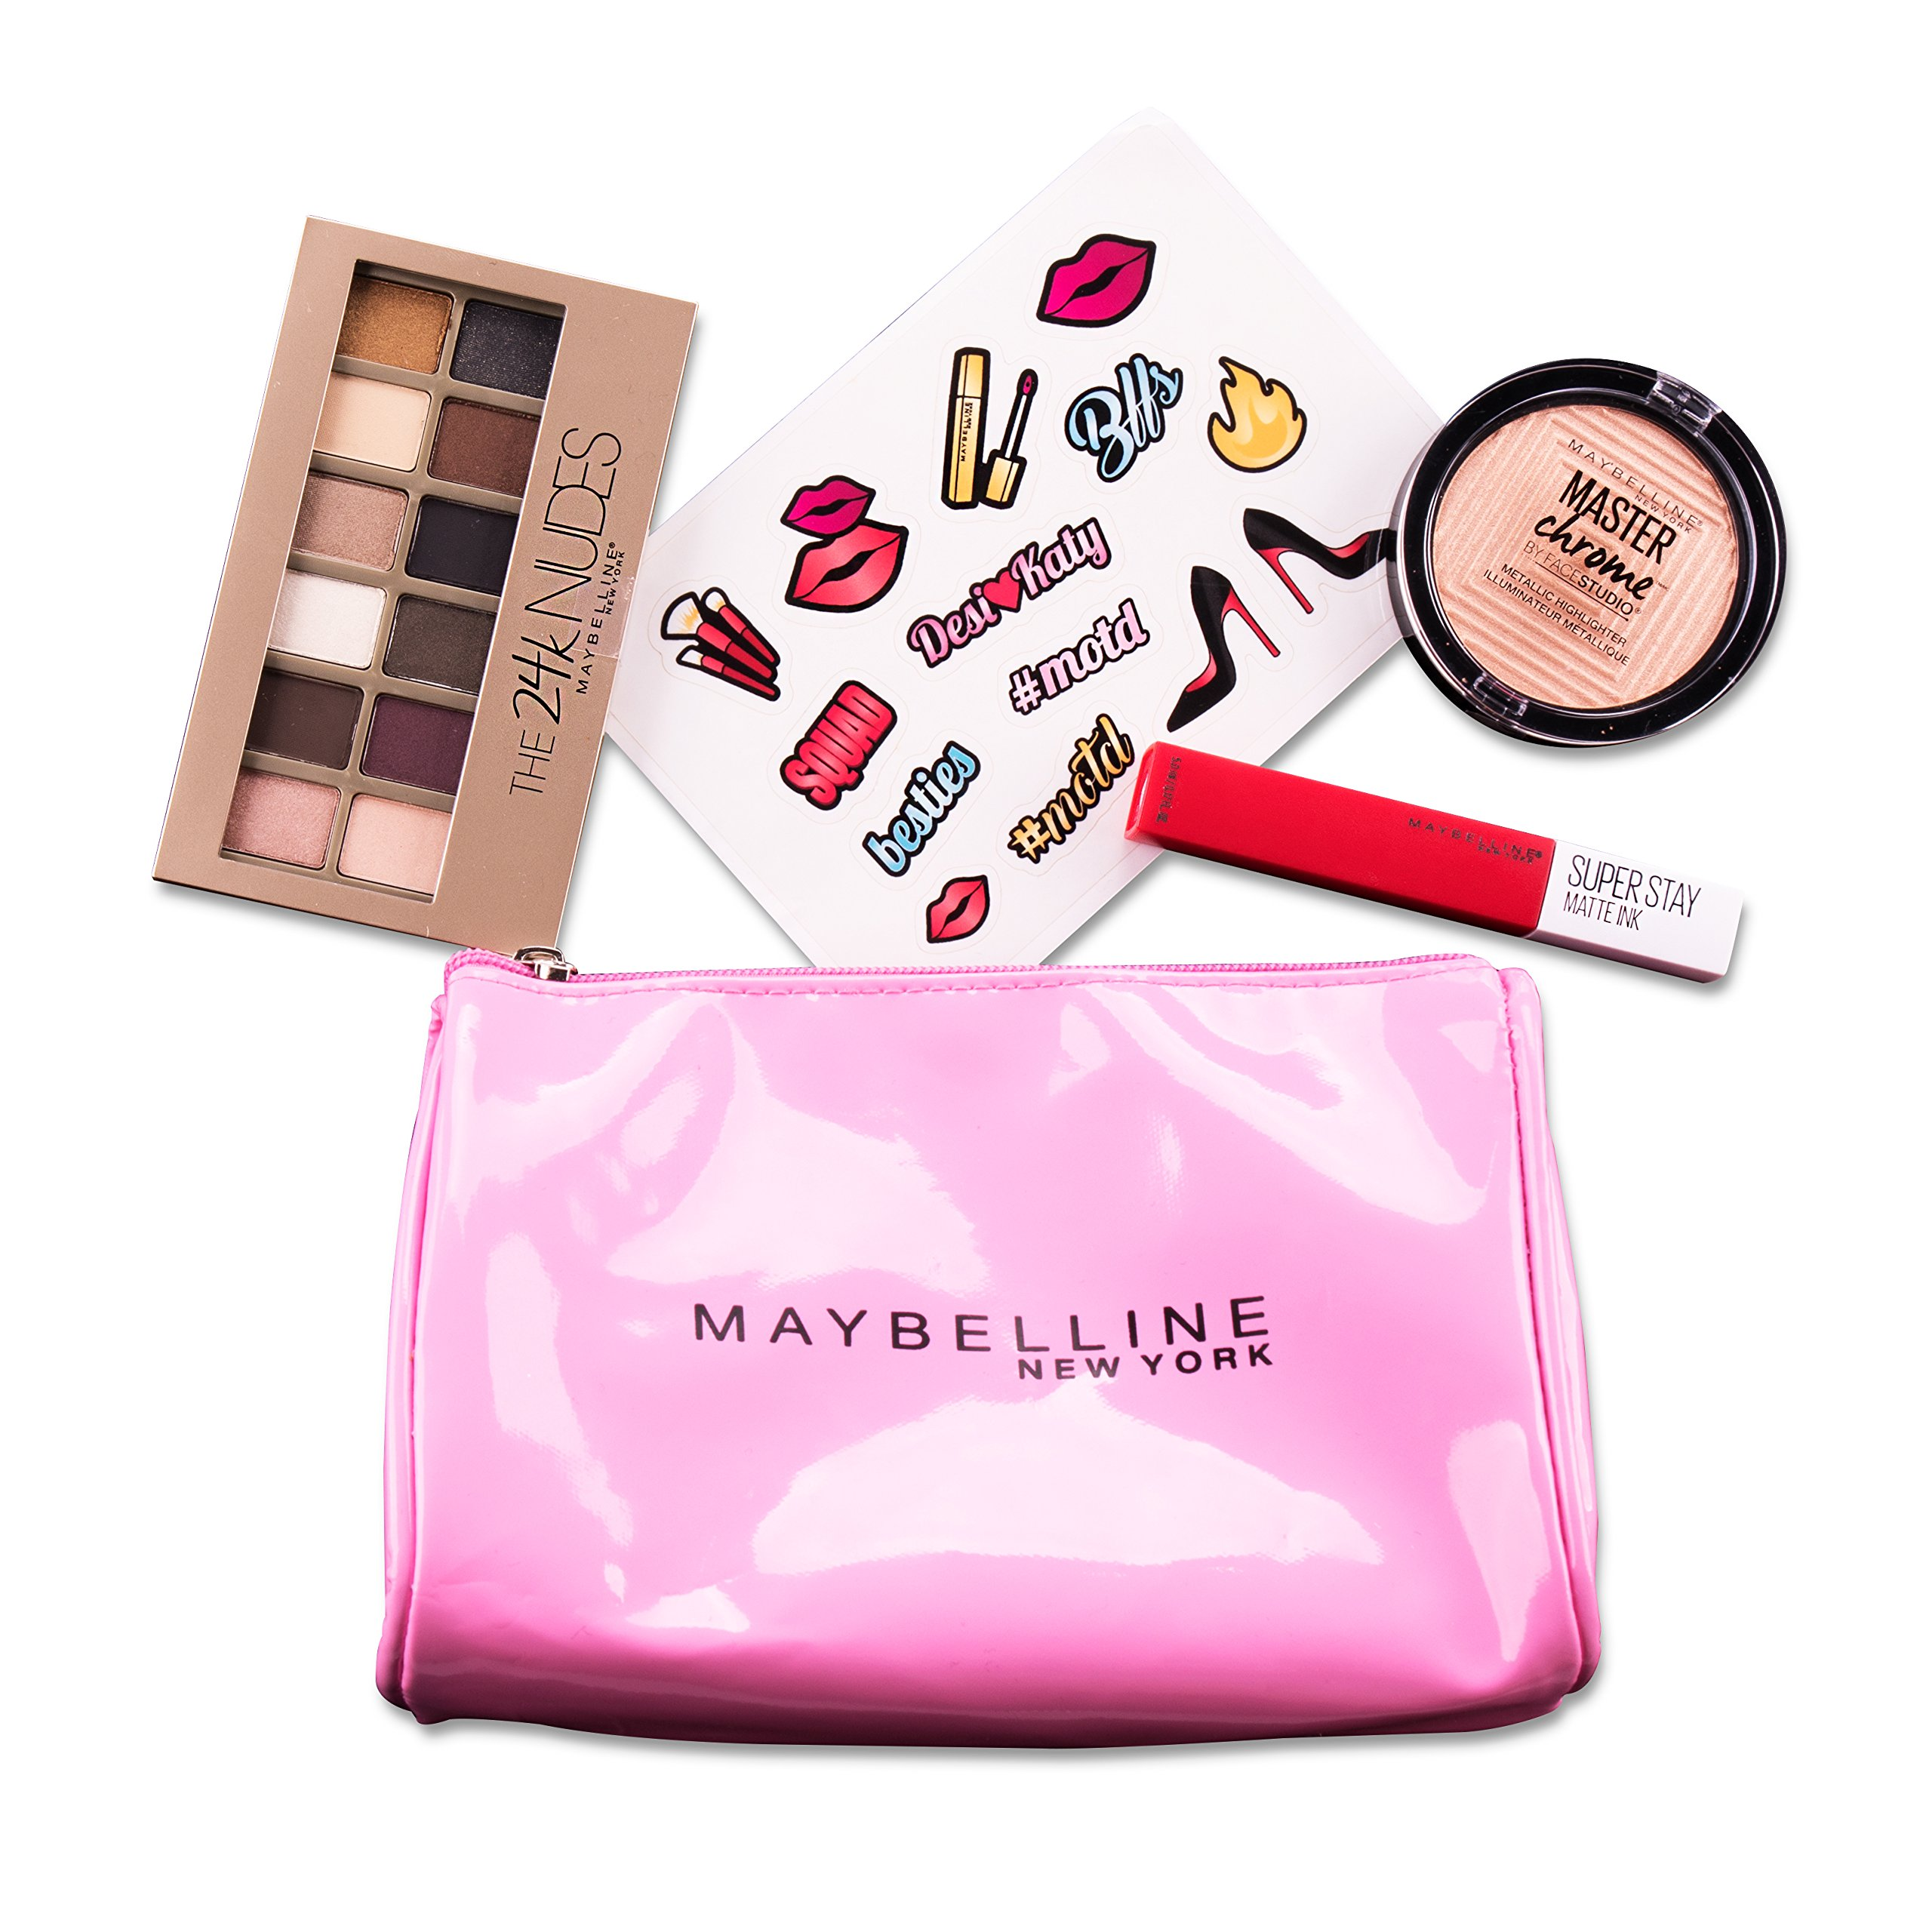 Maybelline New York Bestie Bundle By Desi & Katy